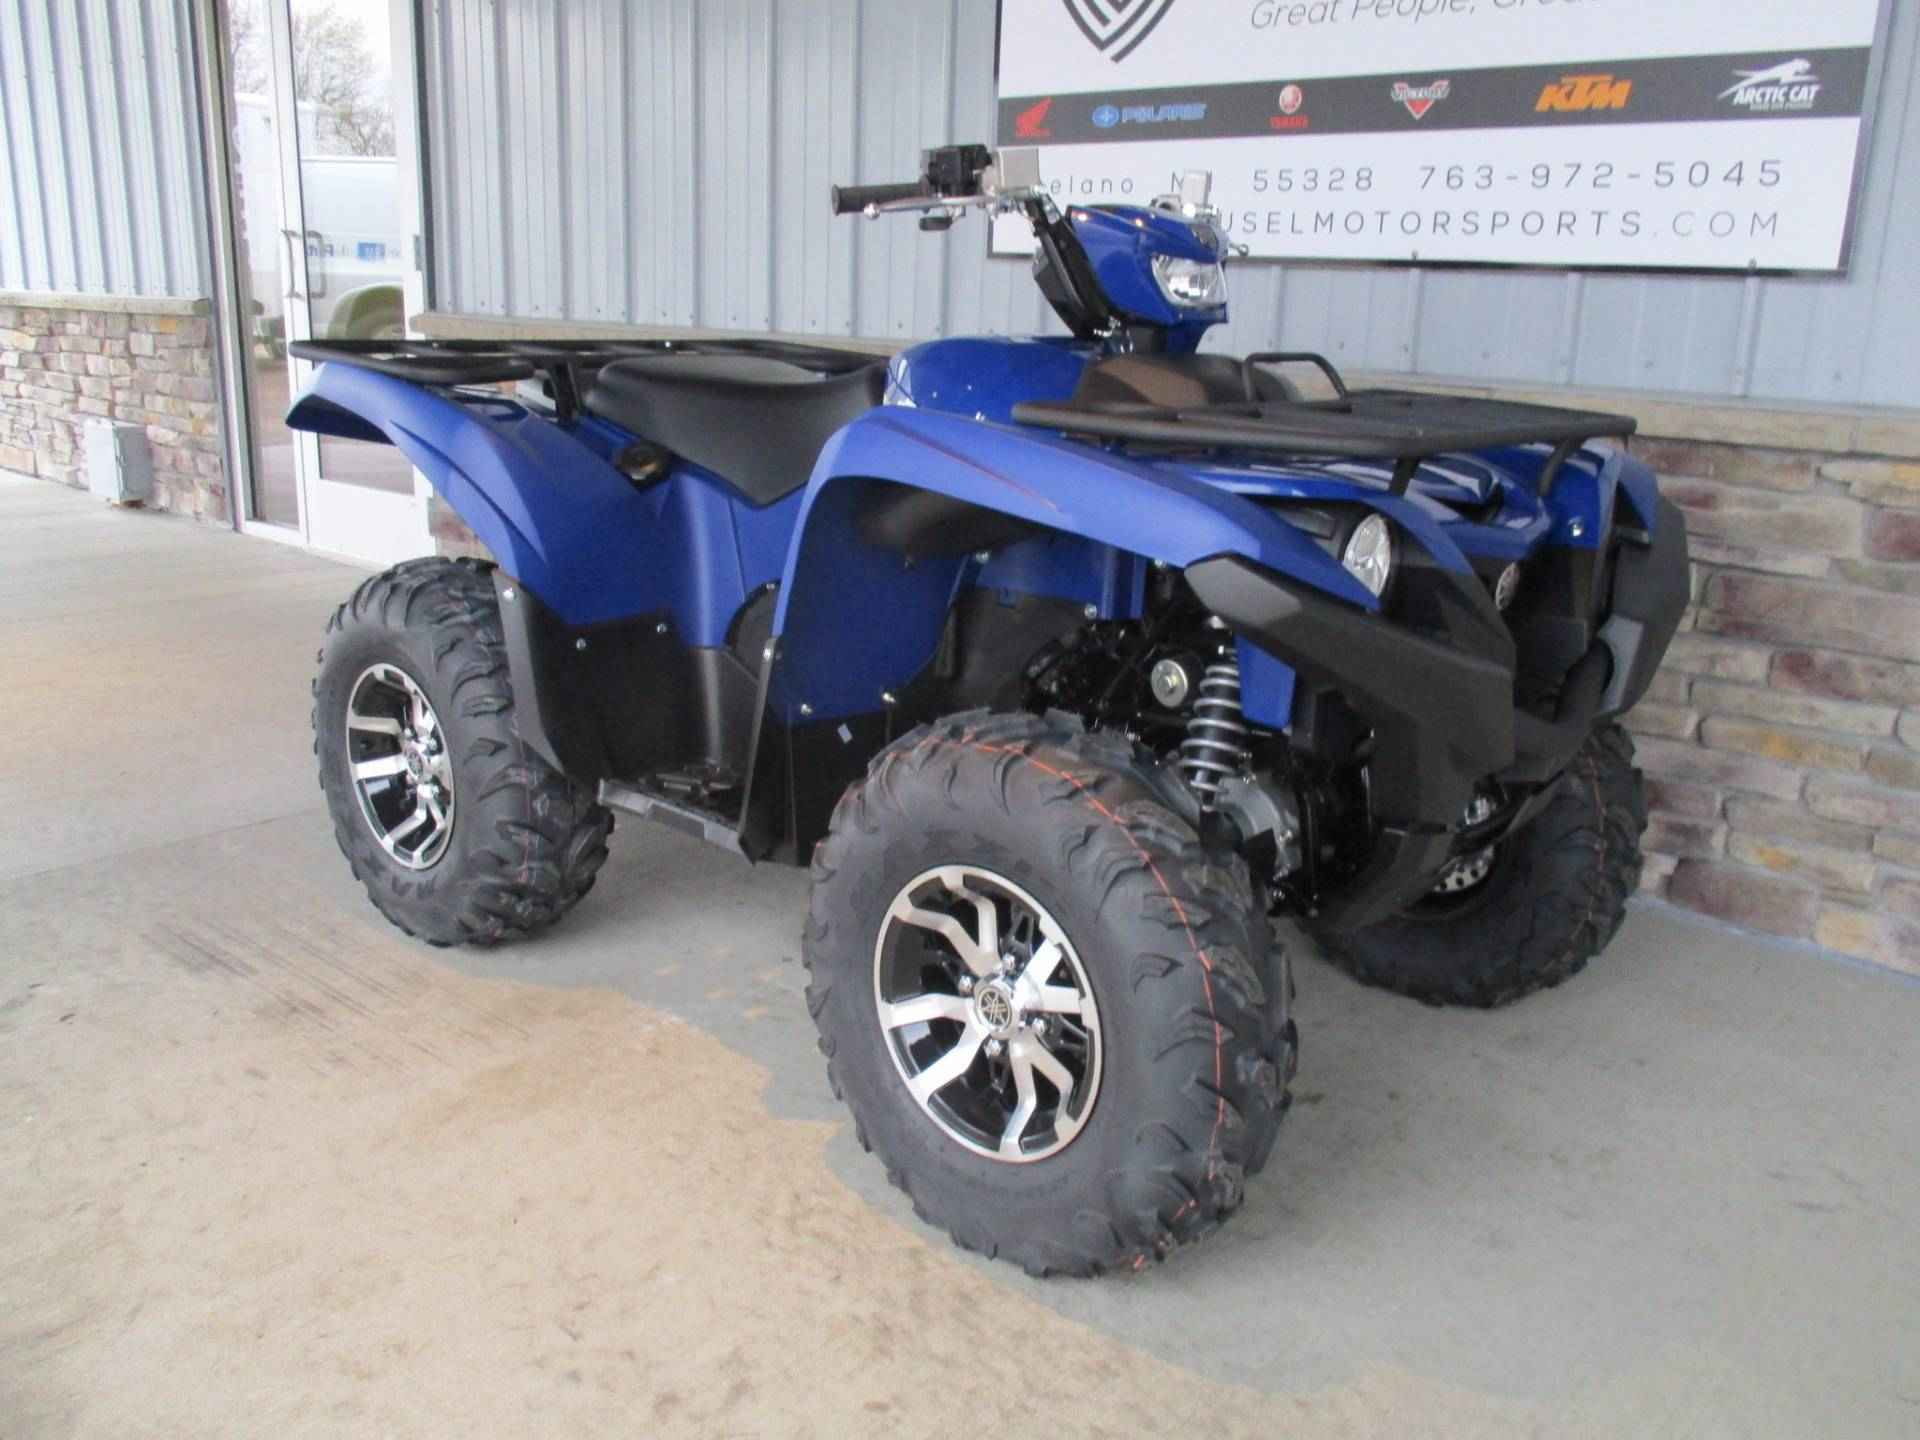 2017 Yamaha Grizzly >> New 2017 Yamaha Grizzly Eps Atvs For Sale In Minnesota On Atvtrades Com